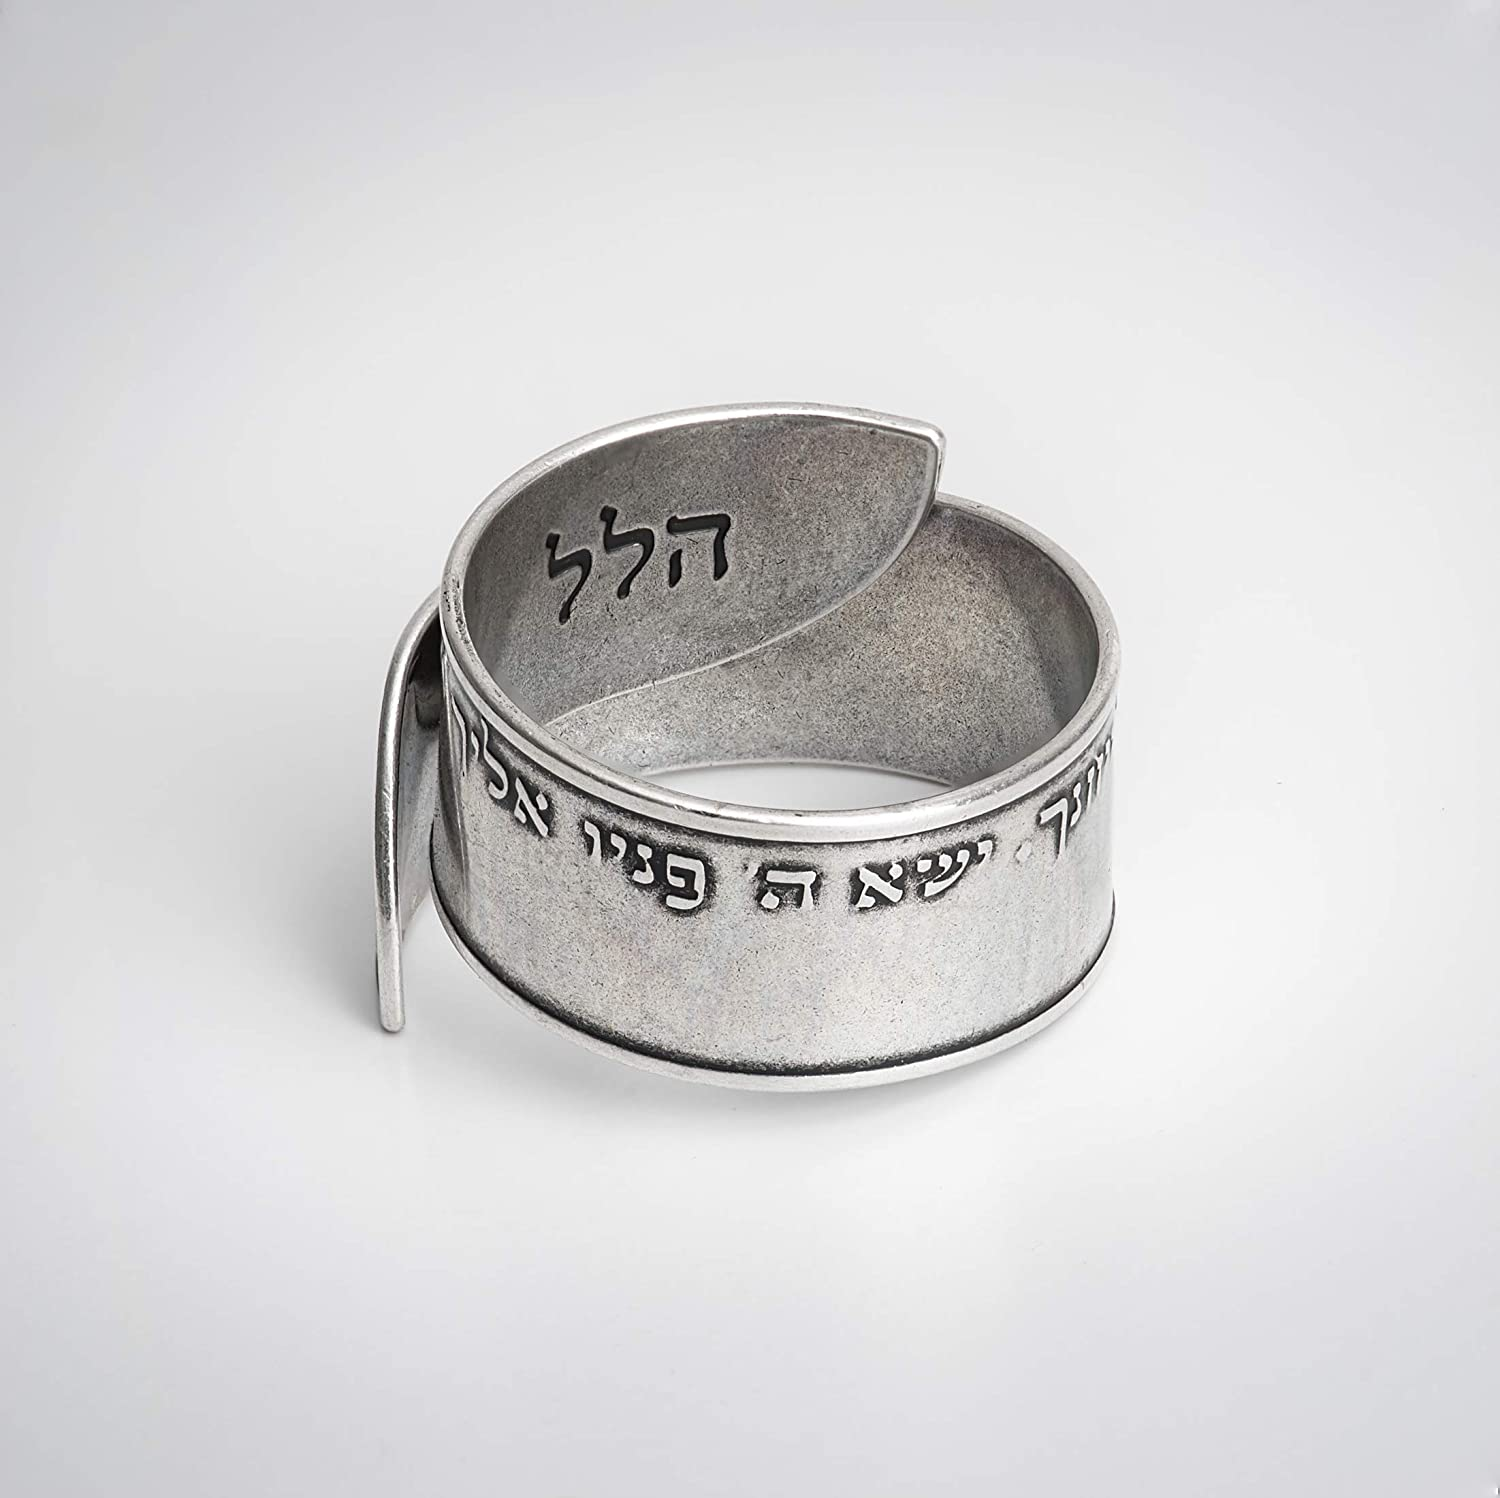 Handmade Silver Ring from Israel Two tone Ring Gift for her Sterling Silver 925 Ring Silver and Gold Ring